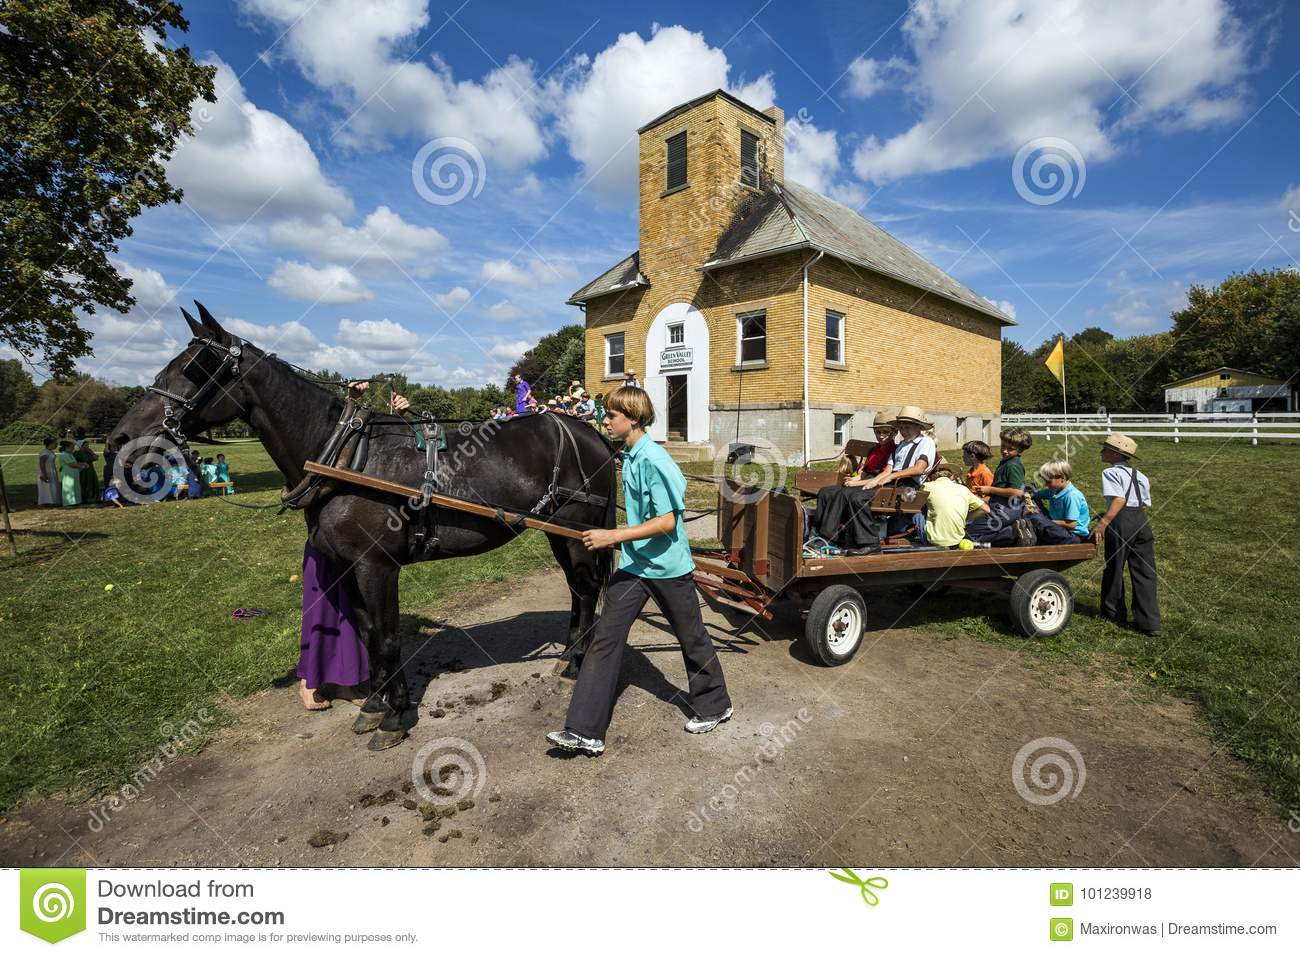 USA - Ohio - Amish